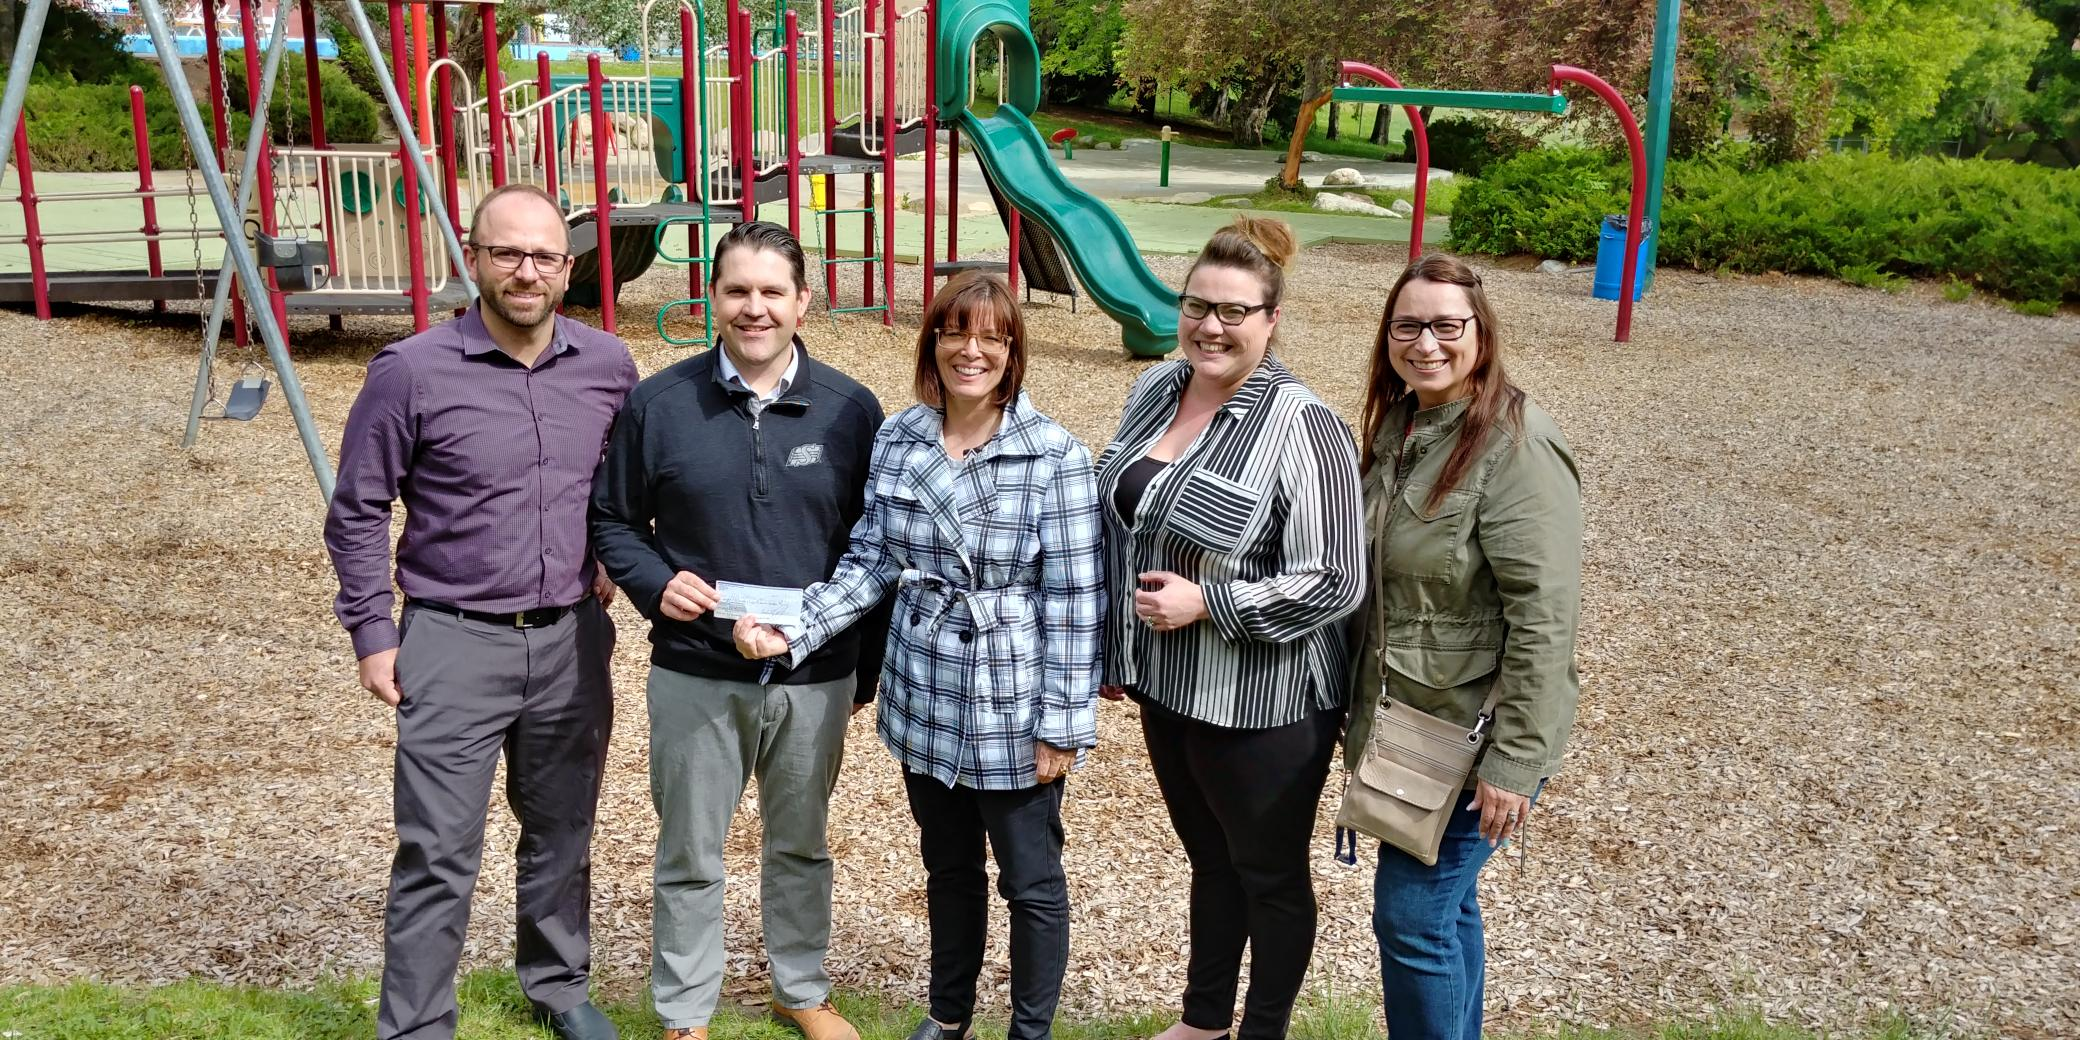 (L-R) City of MJ Parks and Recreation Director Derek Blais, City of MJ Recreation Services Manager Scott Osmachenko, SSFA 55+ Games Chair Crystal Froese, host committee member Amanda Kohl, host committee member Sandra Stewart